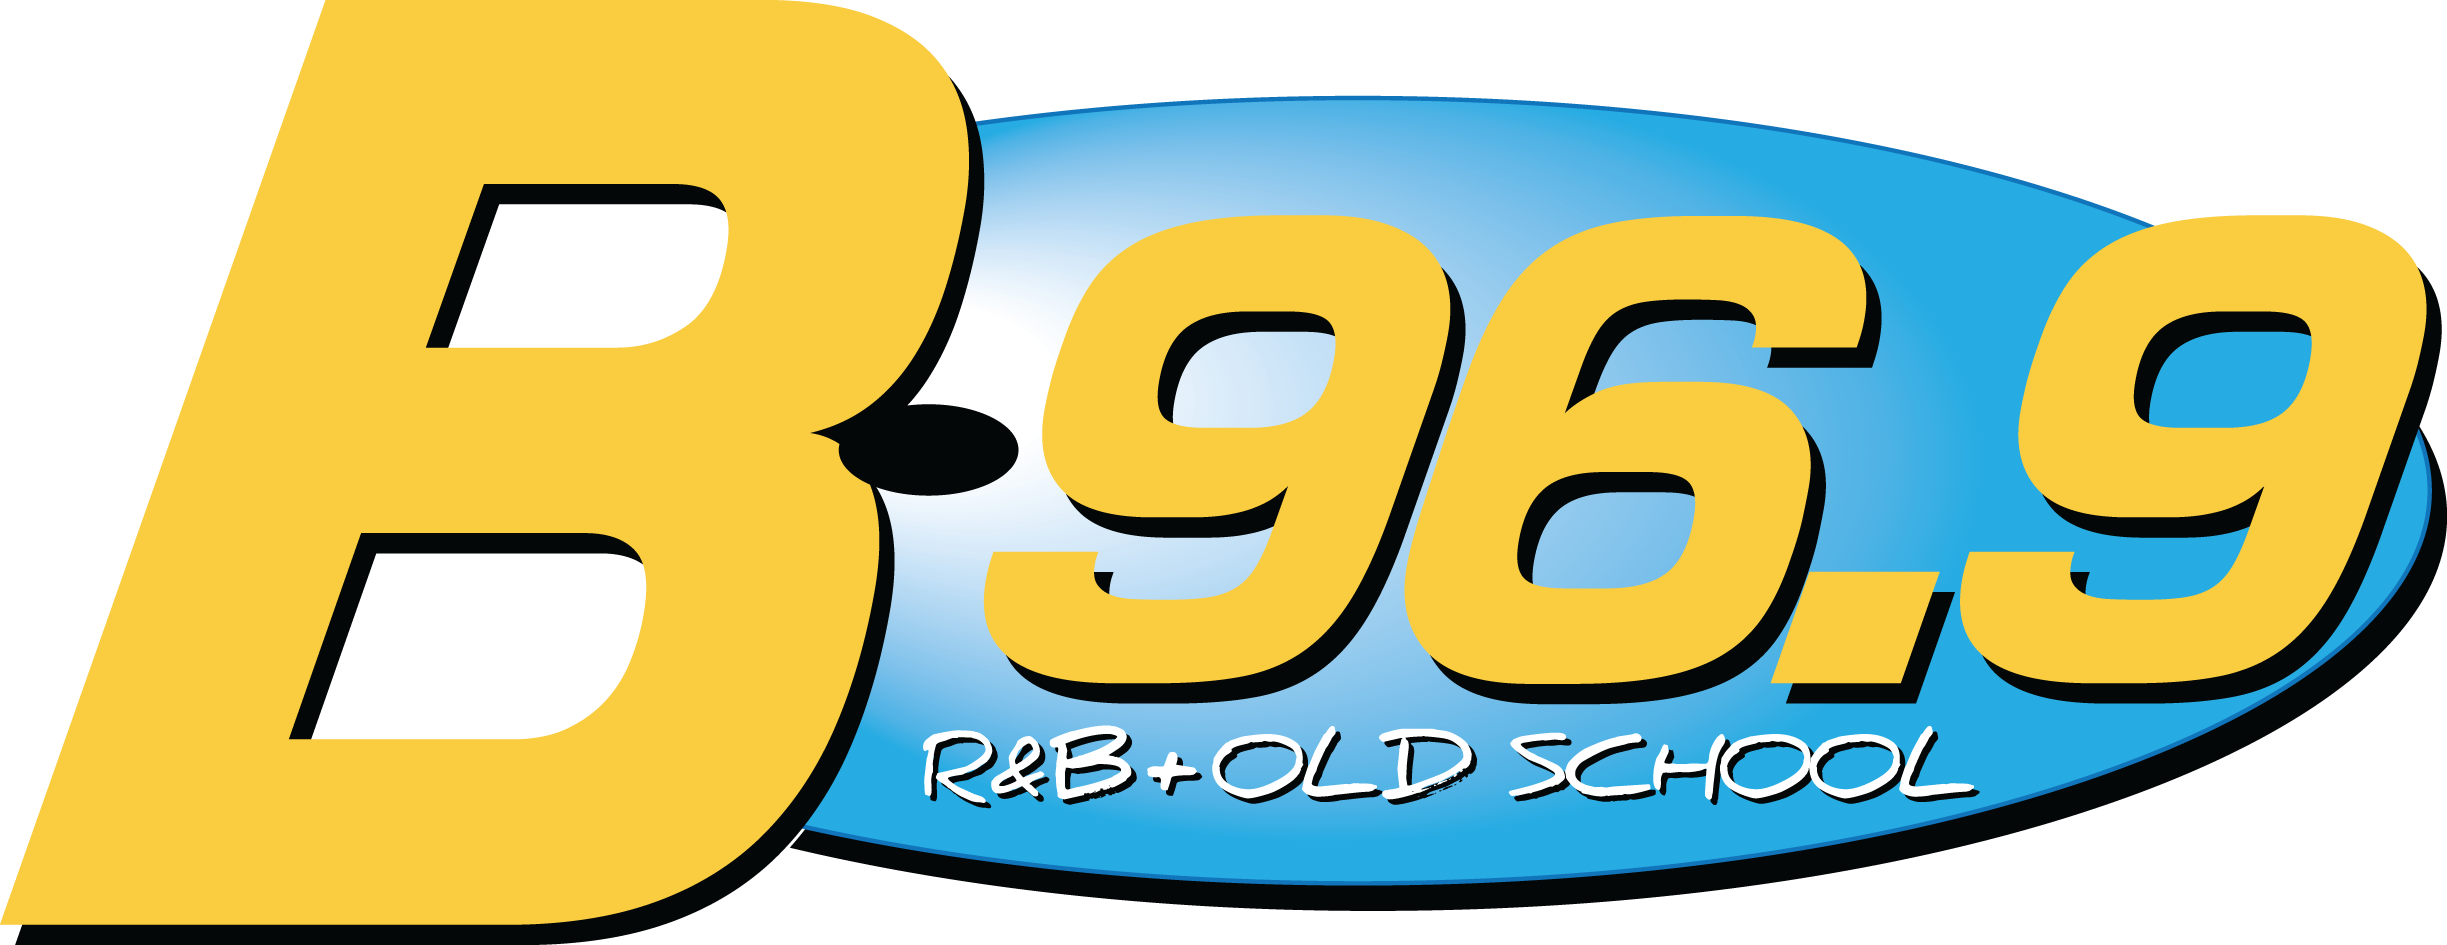 B 969.png